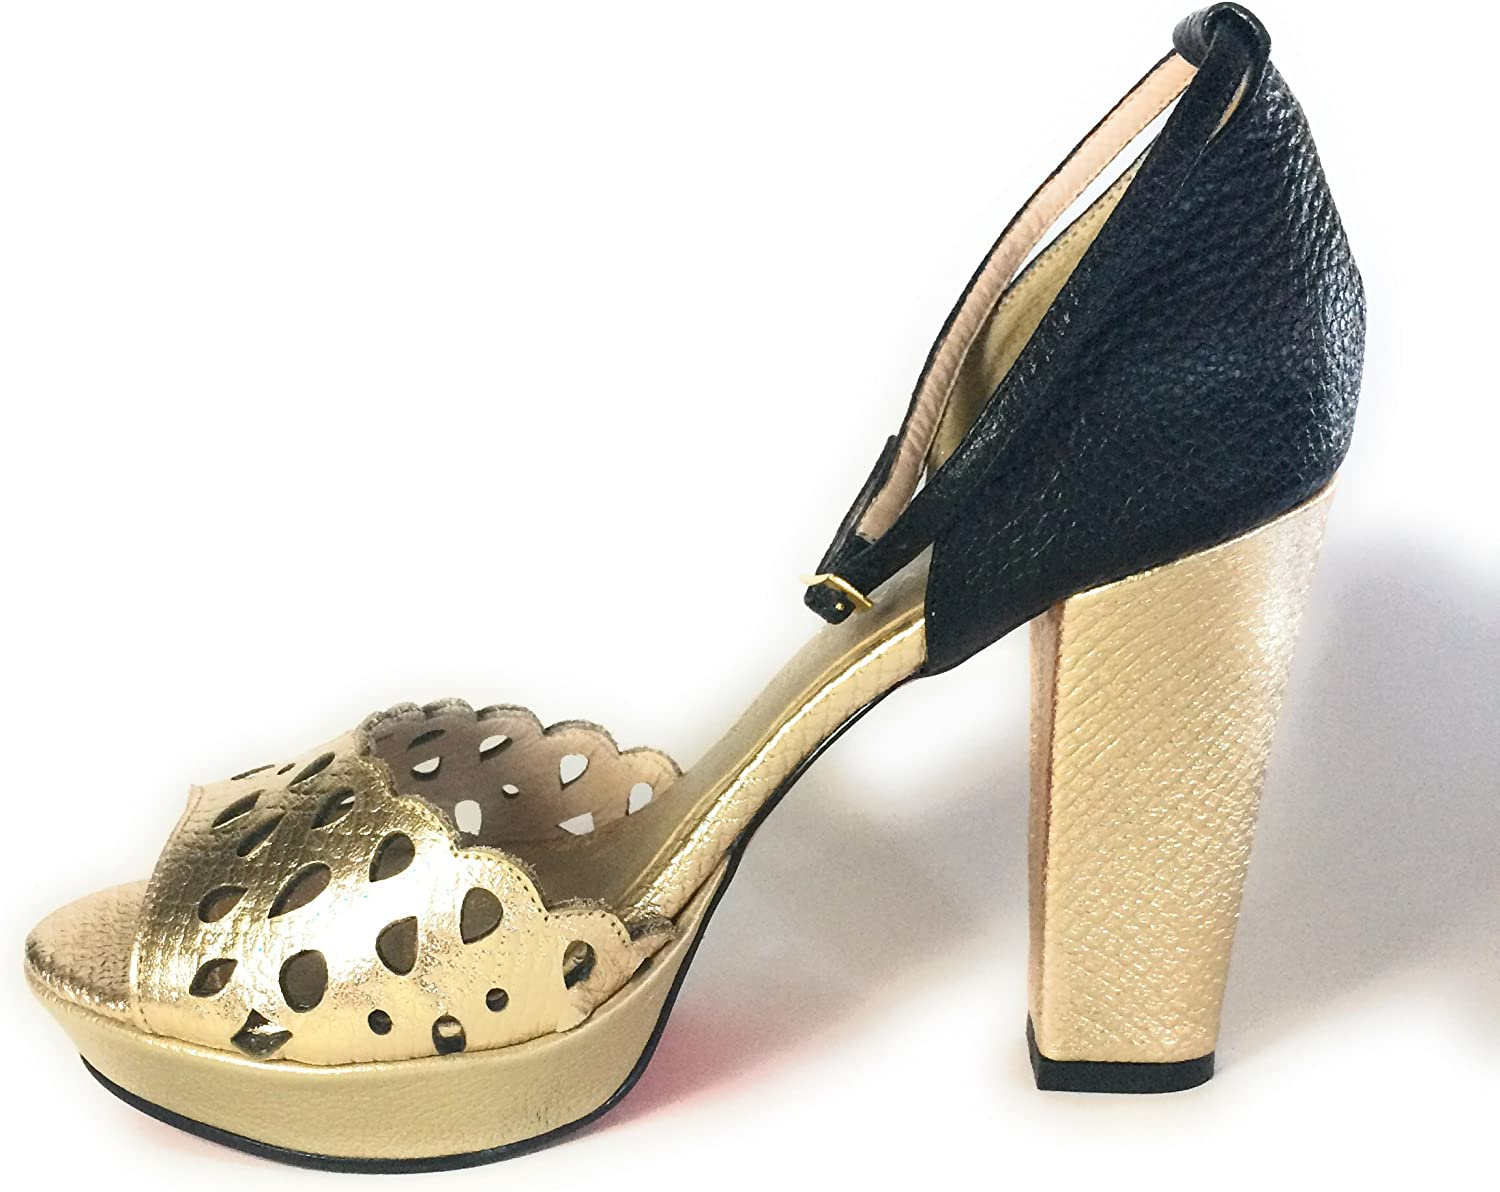 Carlo Valdini Fashion shoes Ankle Strap Block High Heels golden and Black